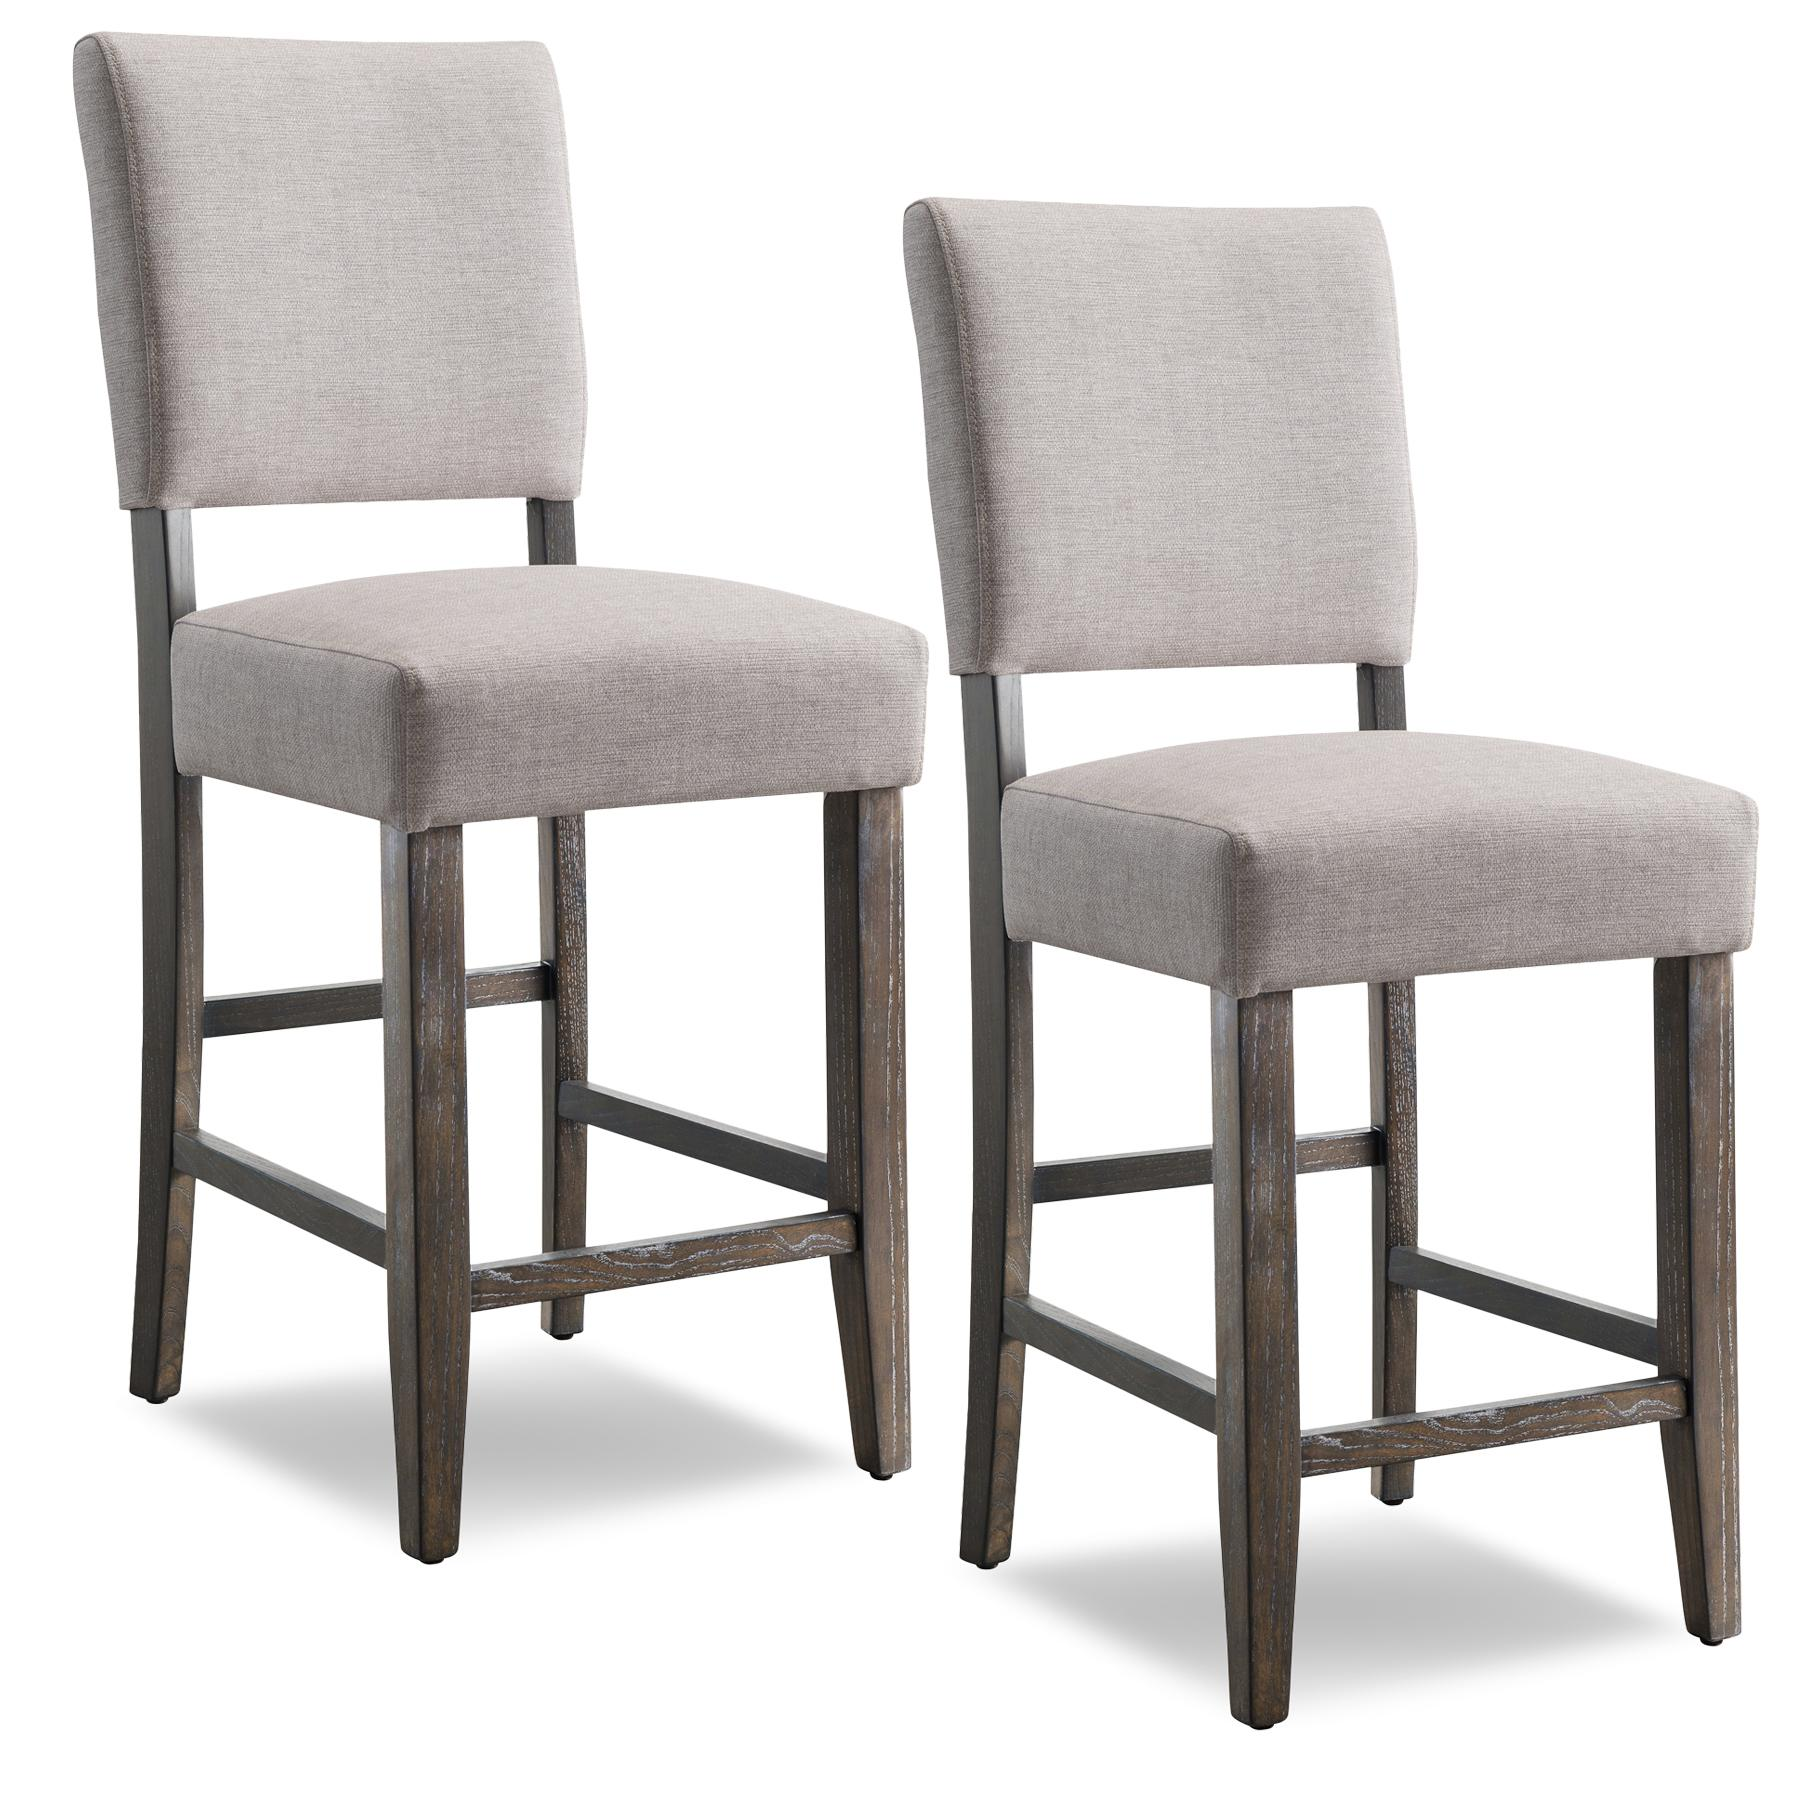 Leick 10086bb hg upholstered back counter - Amazon bedroom chairs and stools ...